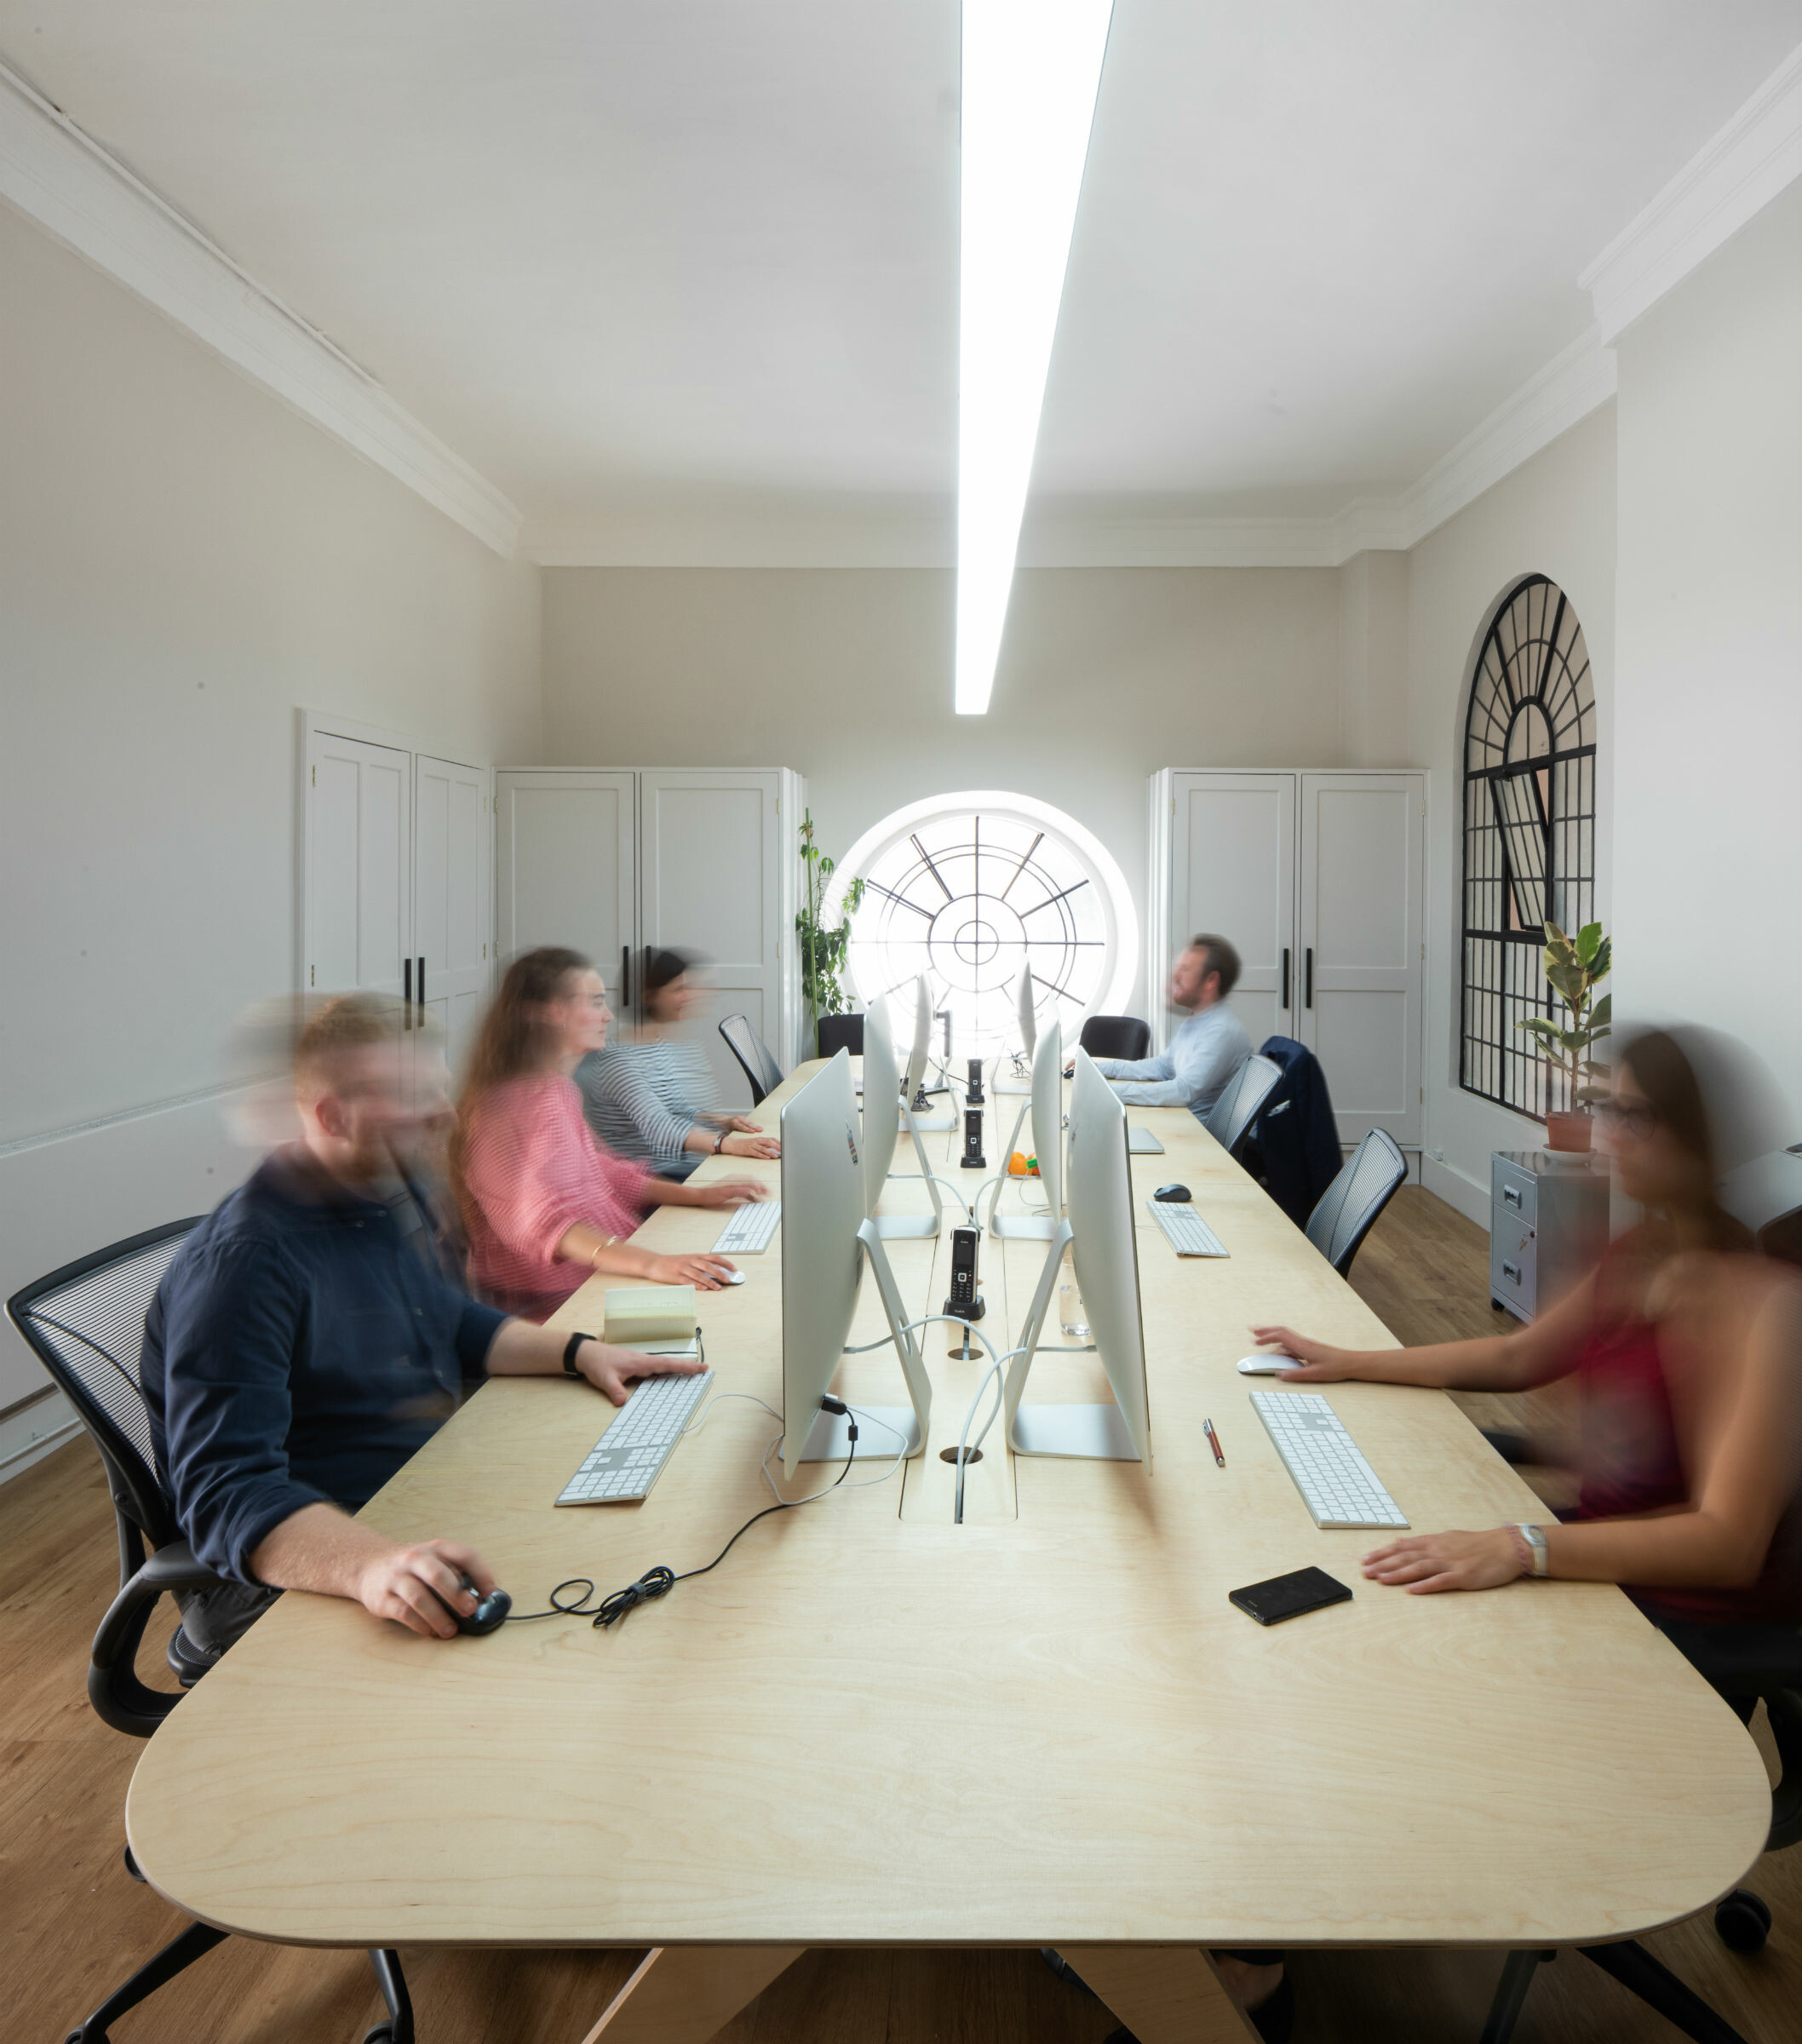 People working at a desk, they are blurred due to slow shutter speed